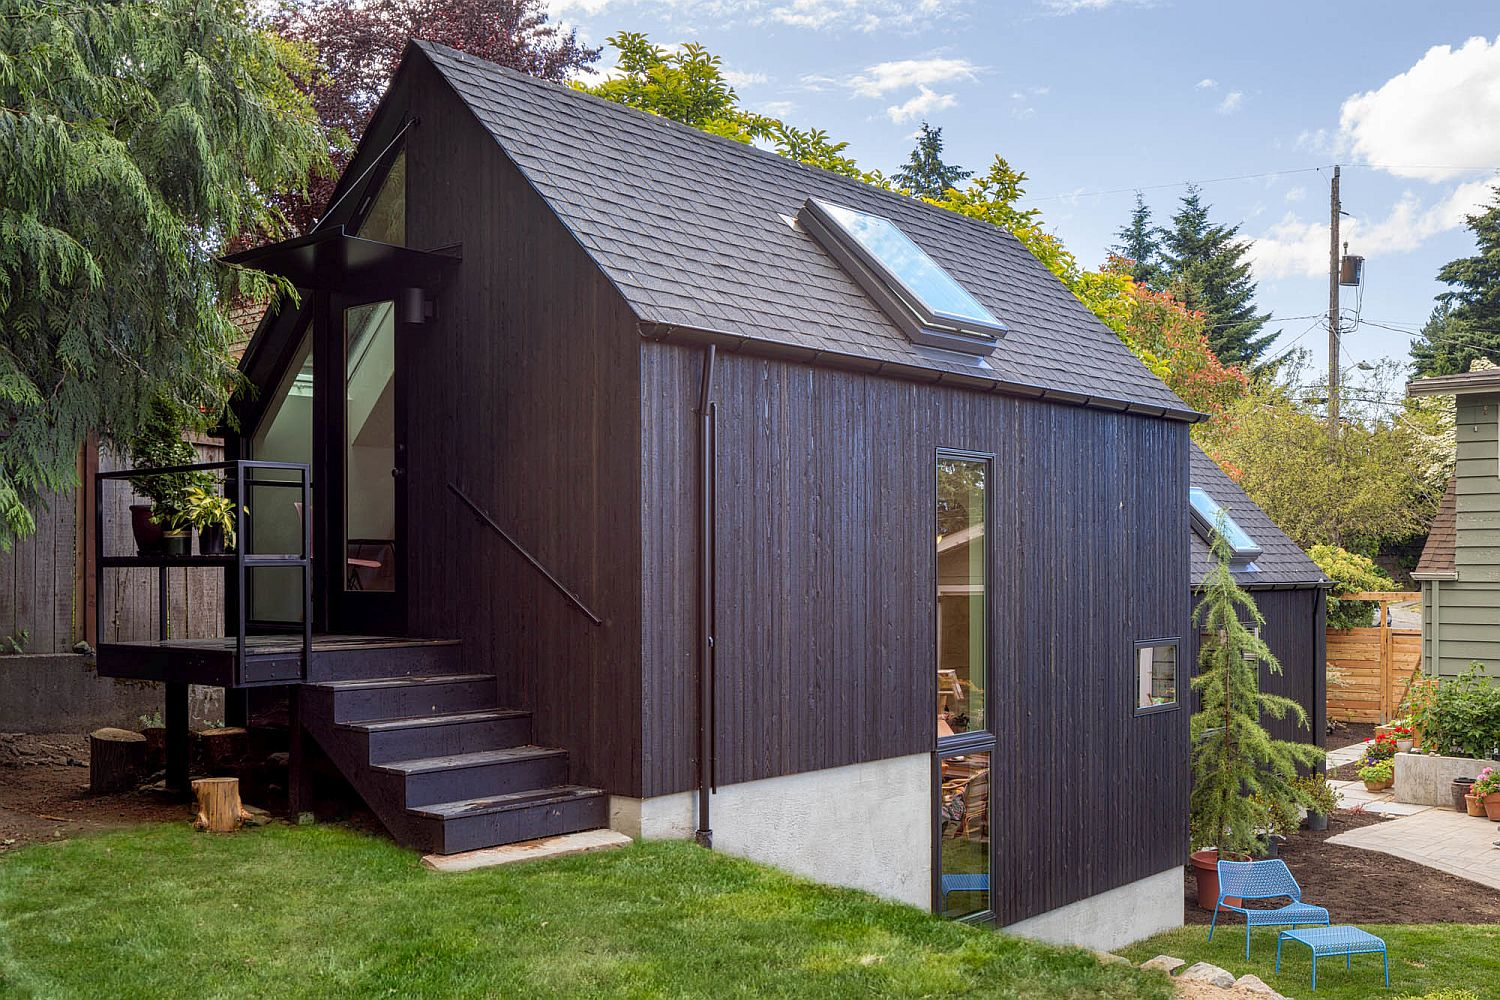 Backyard tiny home designed for aging member of the family